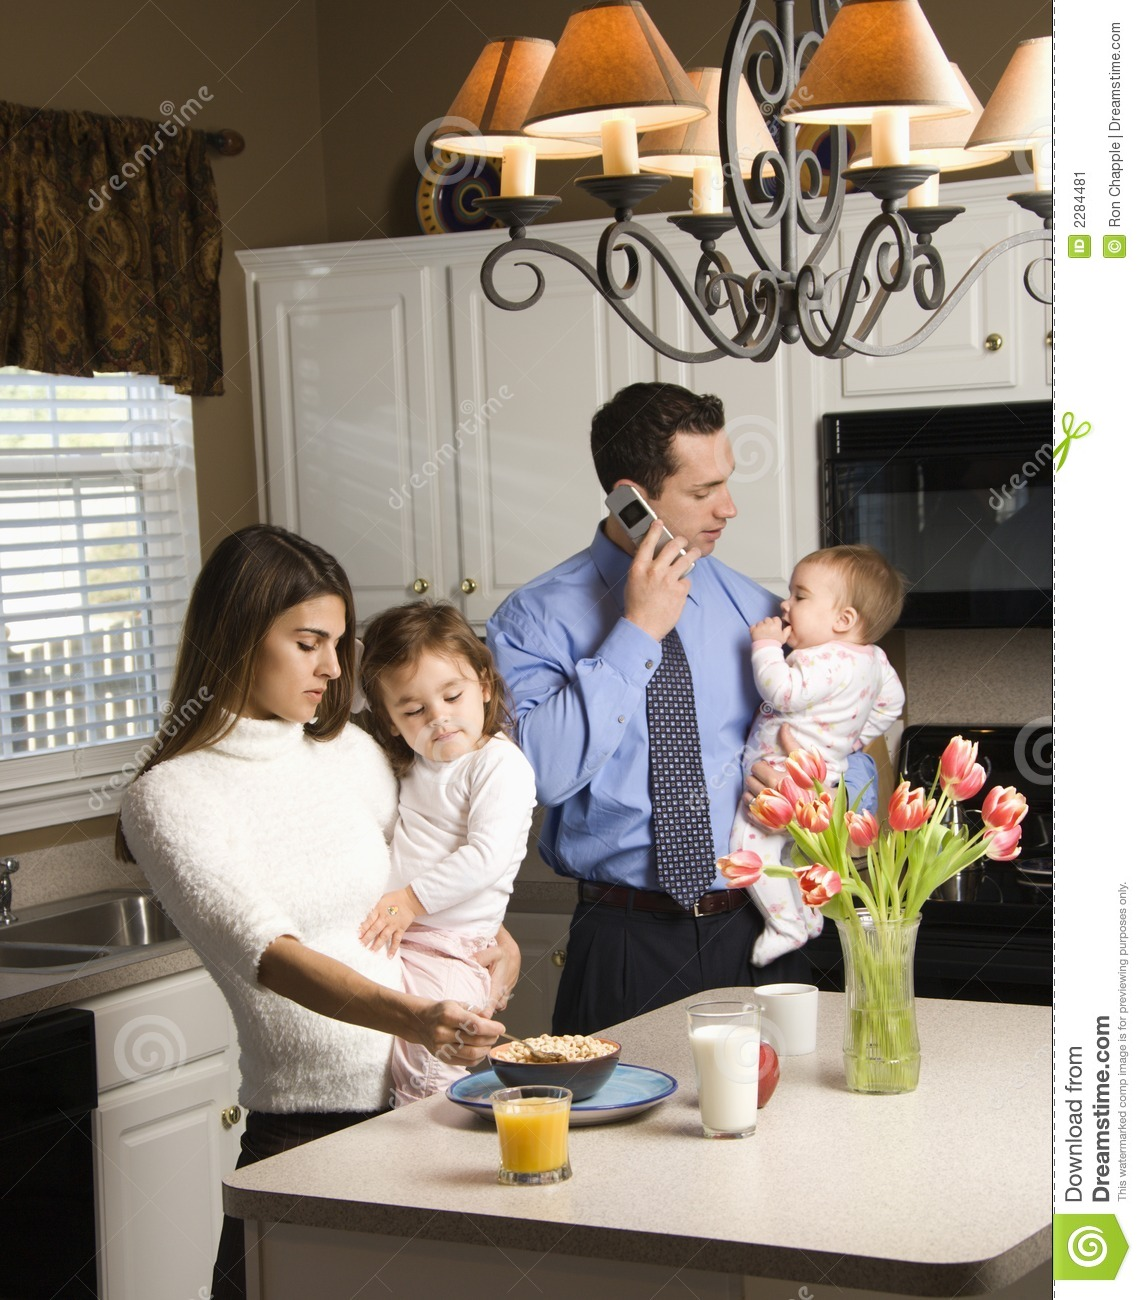 Family Kitchen Family In Kitchen Stock Image Image 2284481